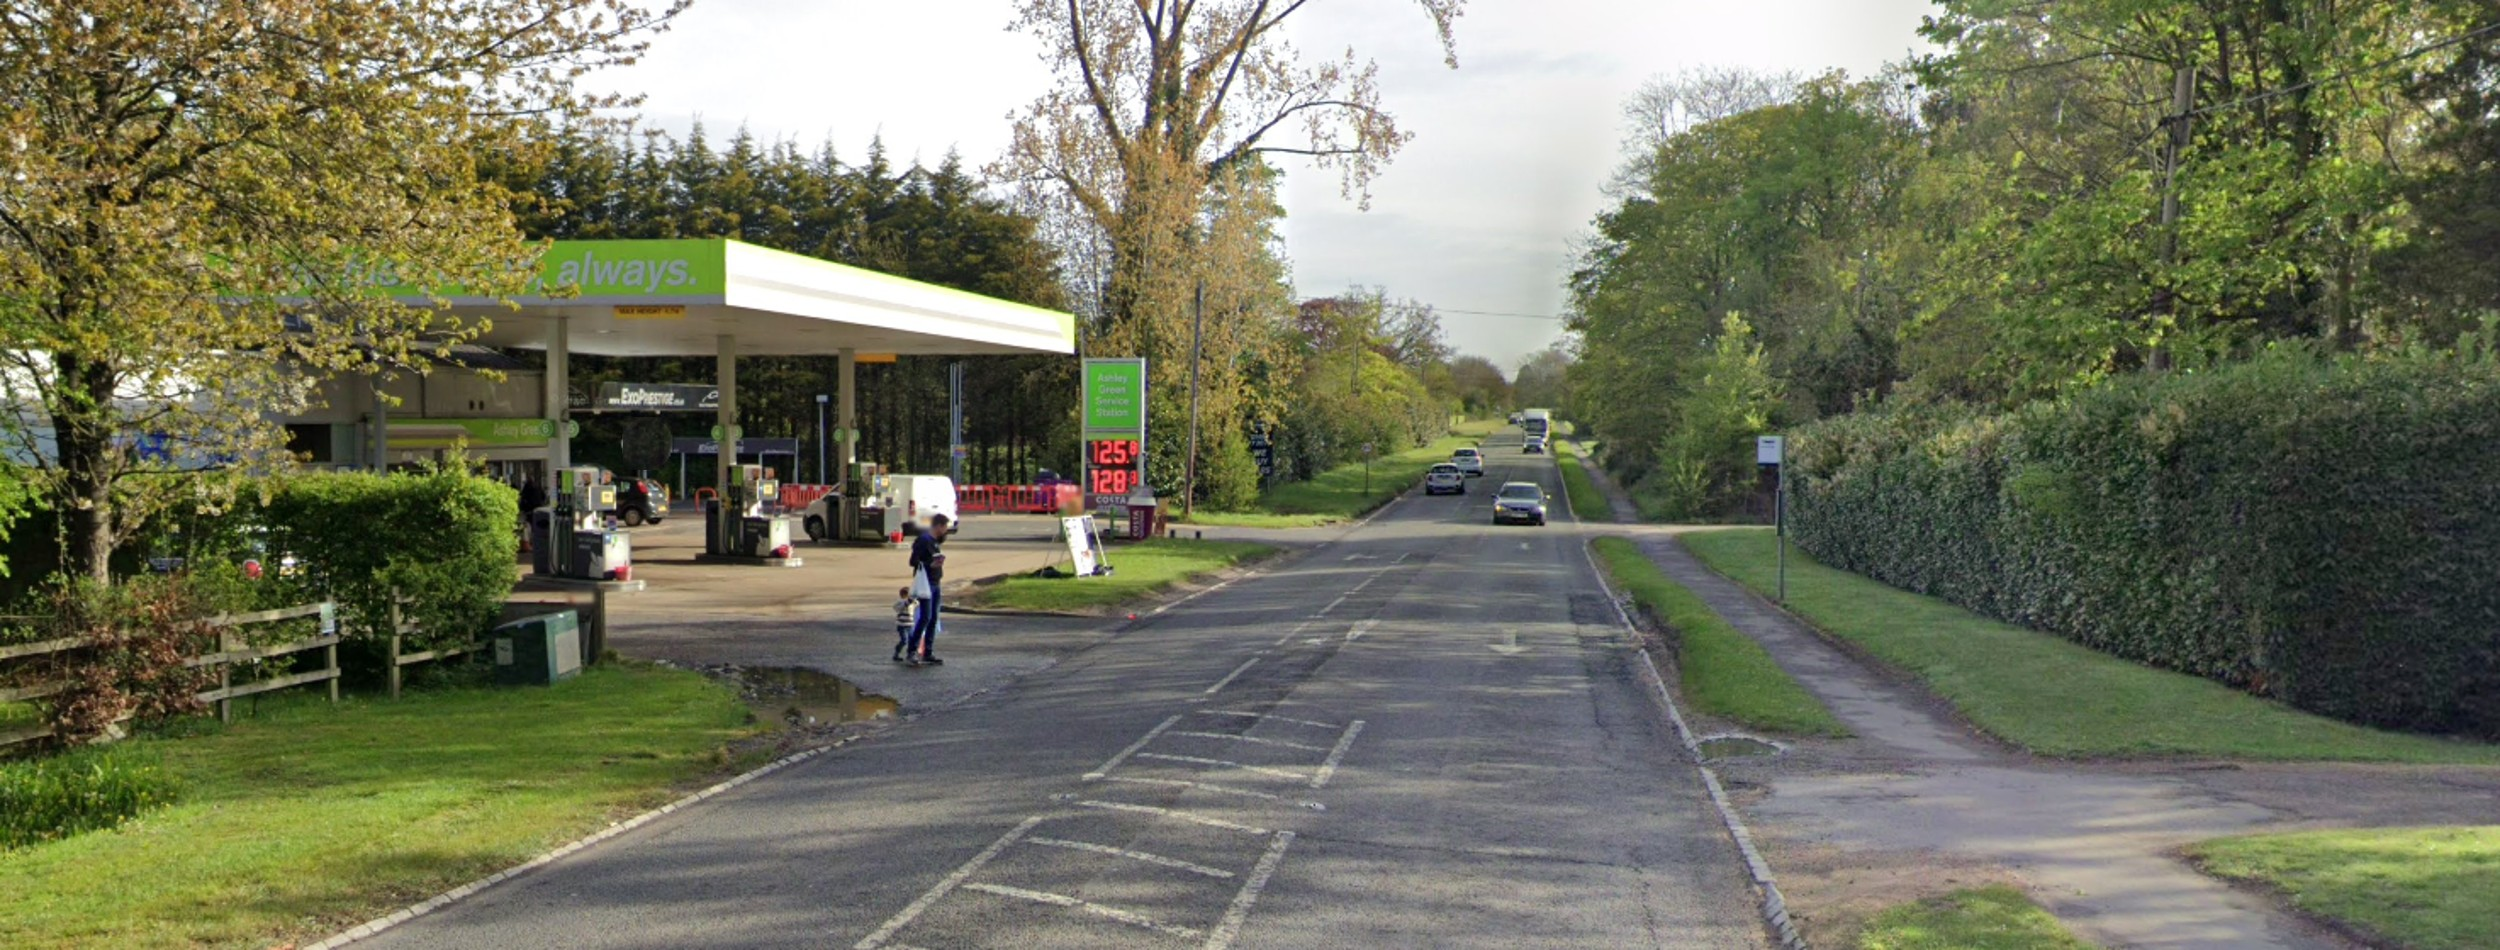 Applegreen Service Station in Chesham, Buckinghamshire, where the video was captured of the vehicles overtaking the traffic on the path.